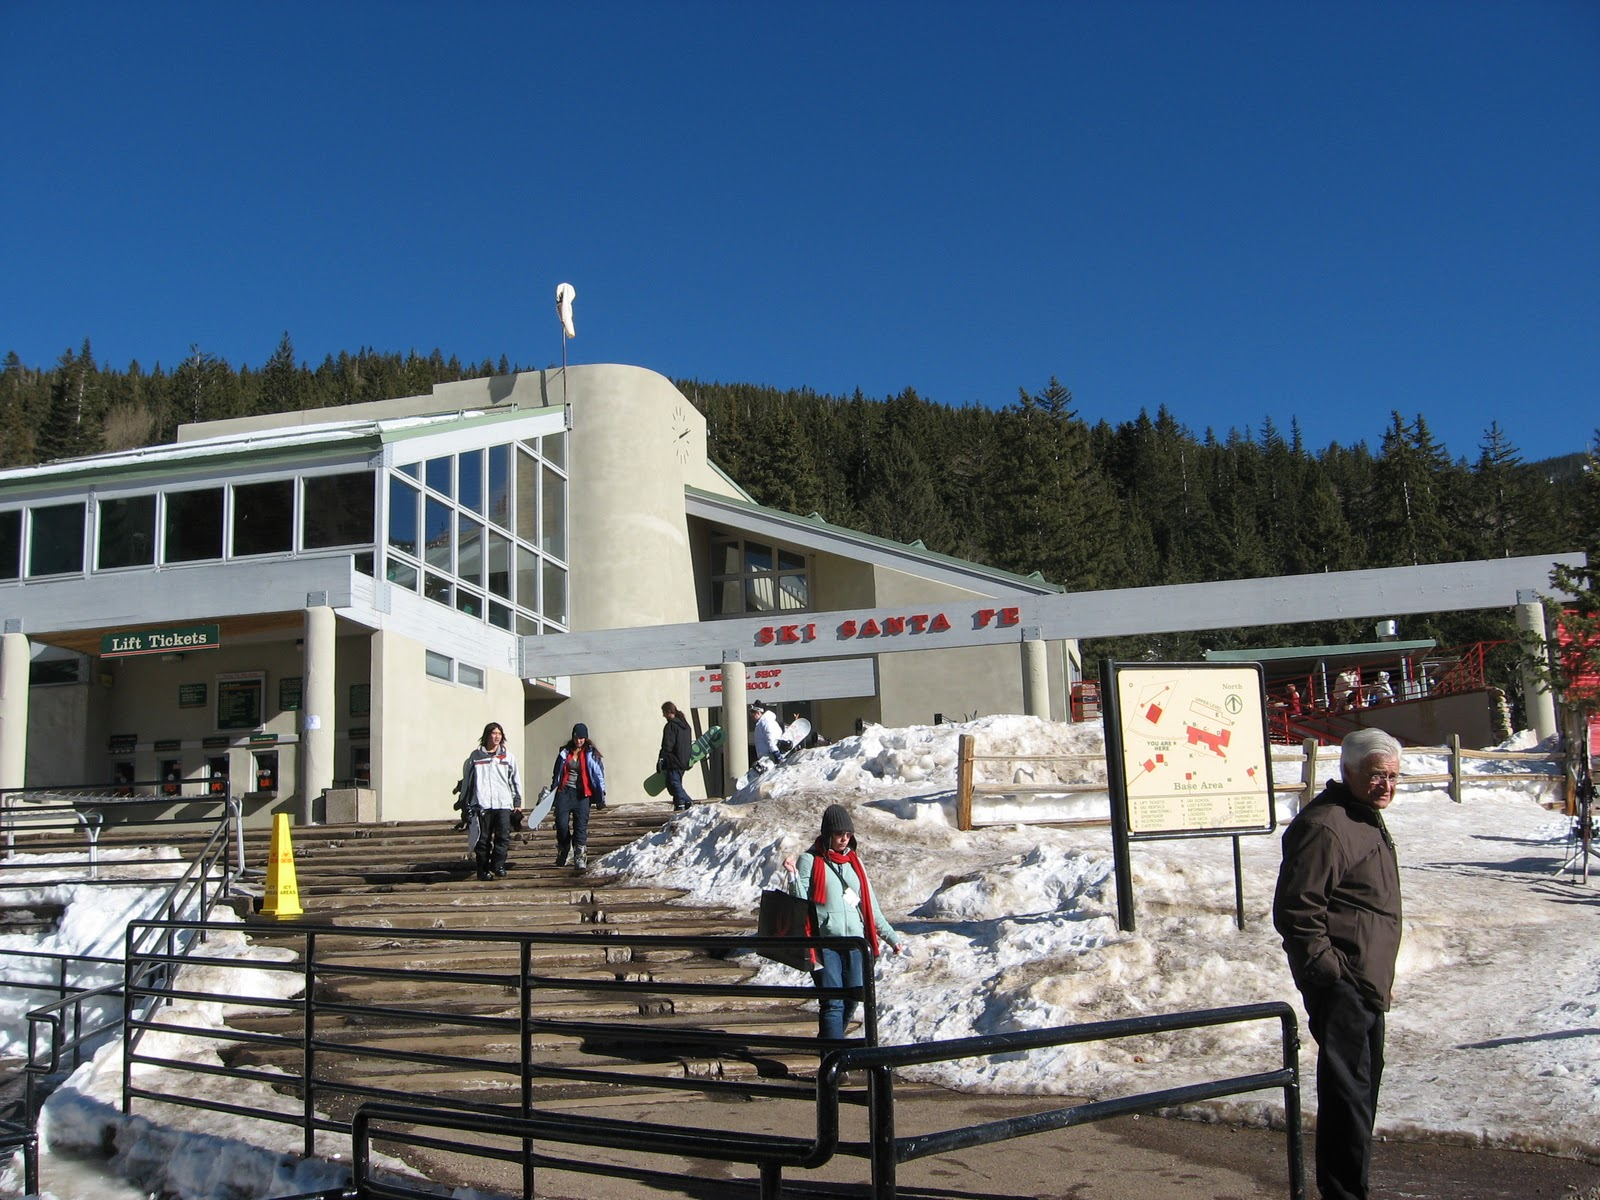 the santa fe ski basinone of new mexico's most popular ski areas